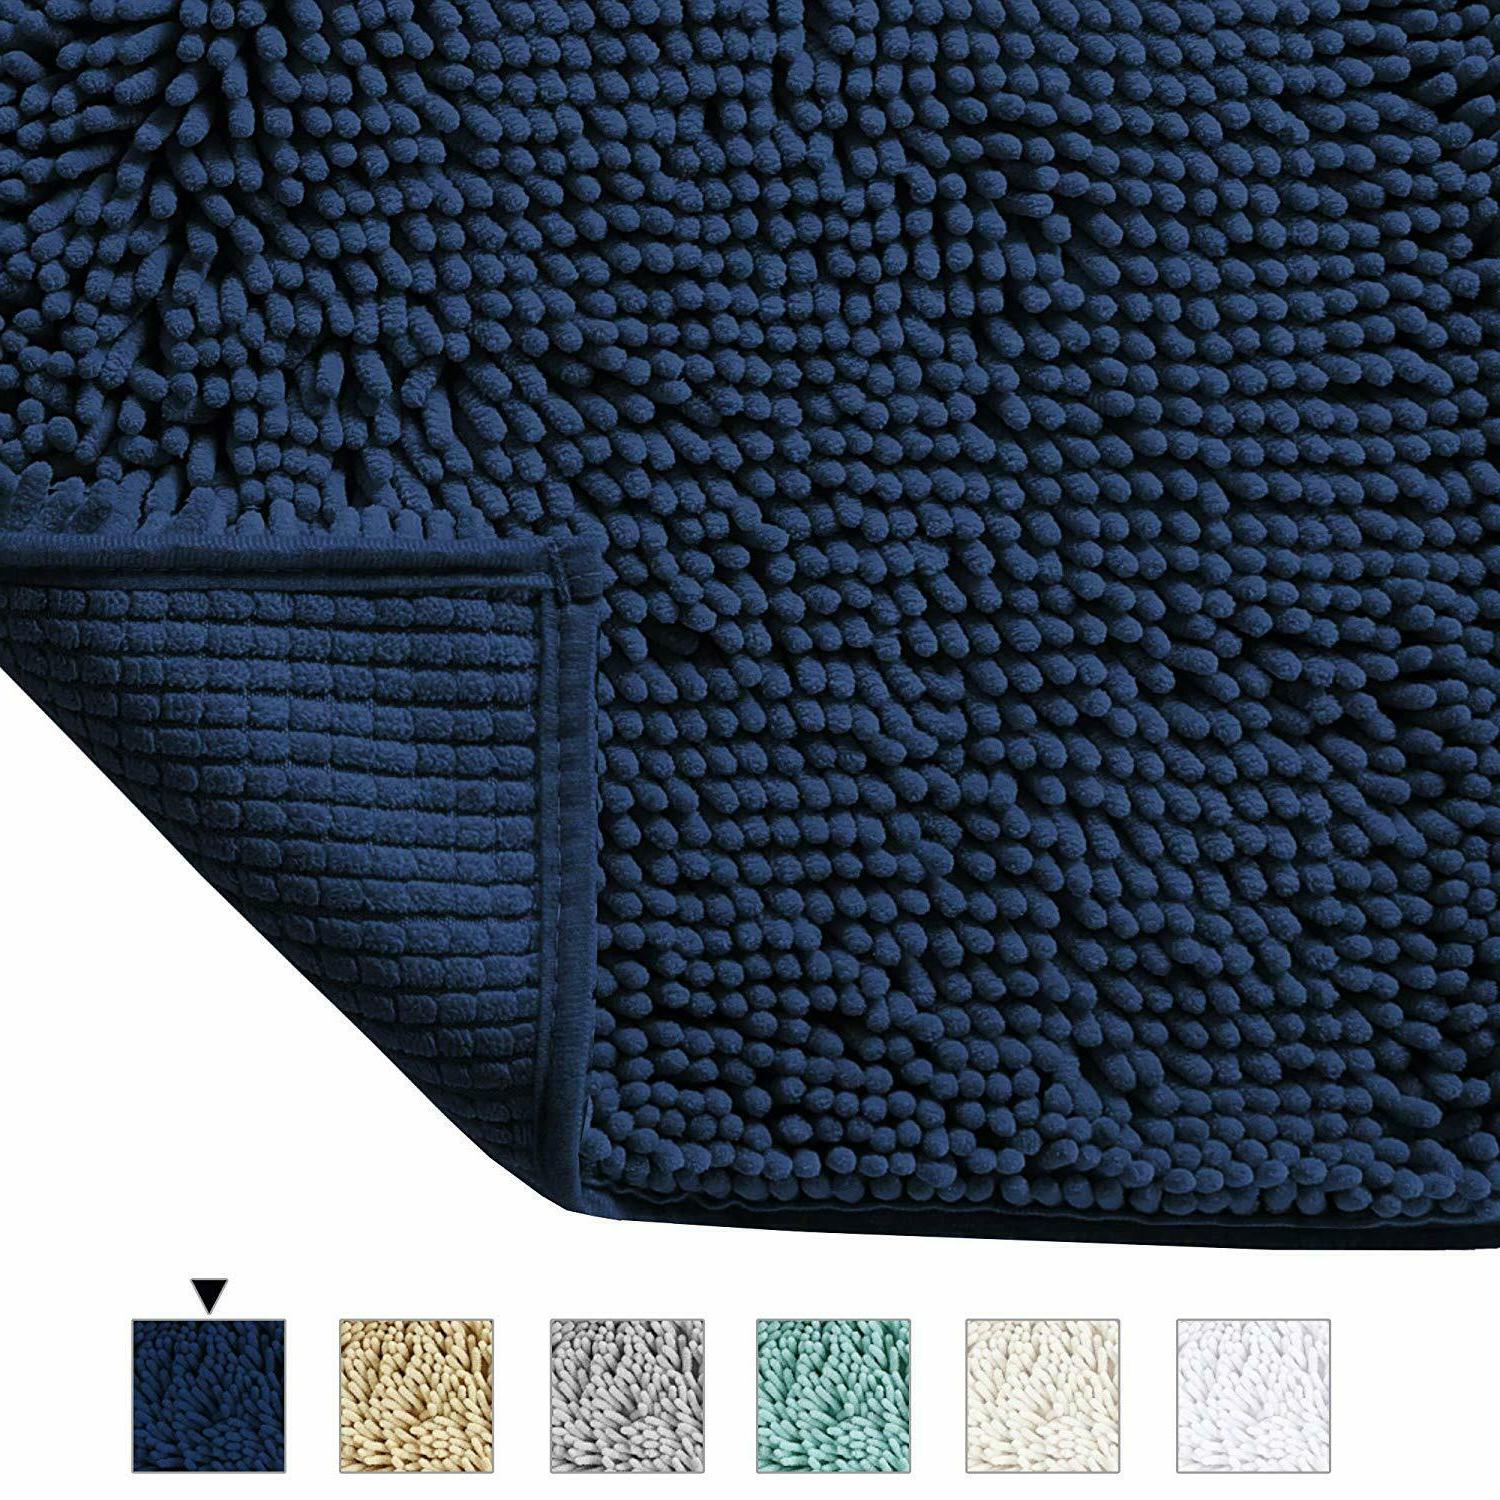 Bathroom Rug Shower Mat Soft Microfiber Non-Slip